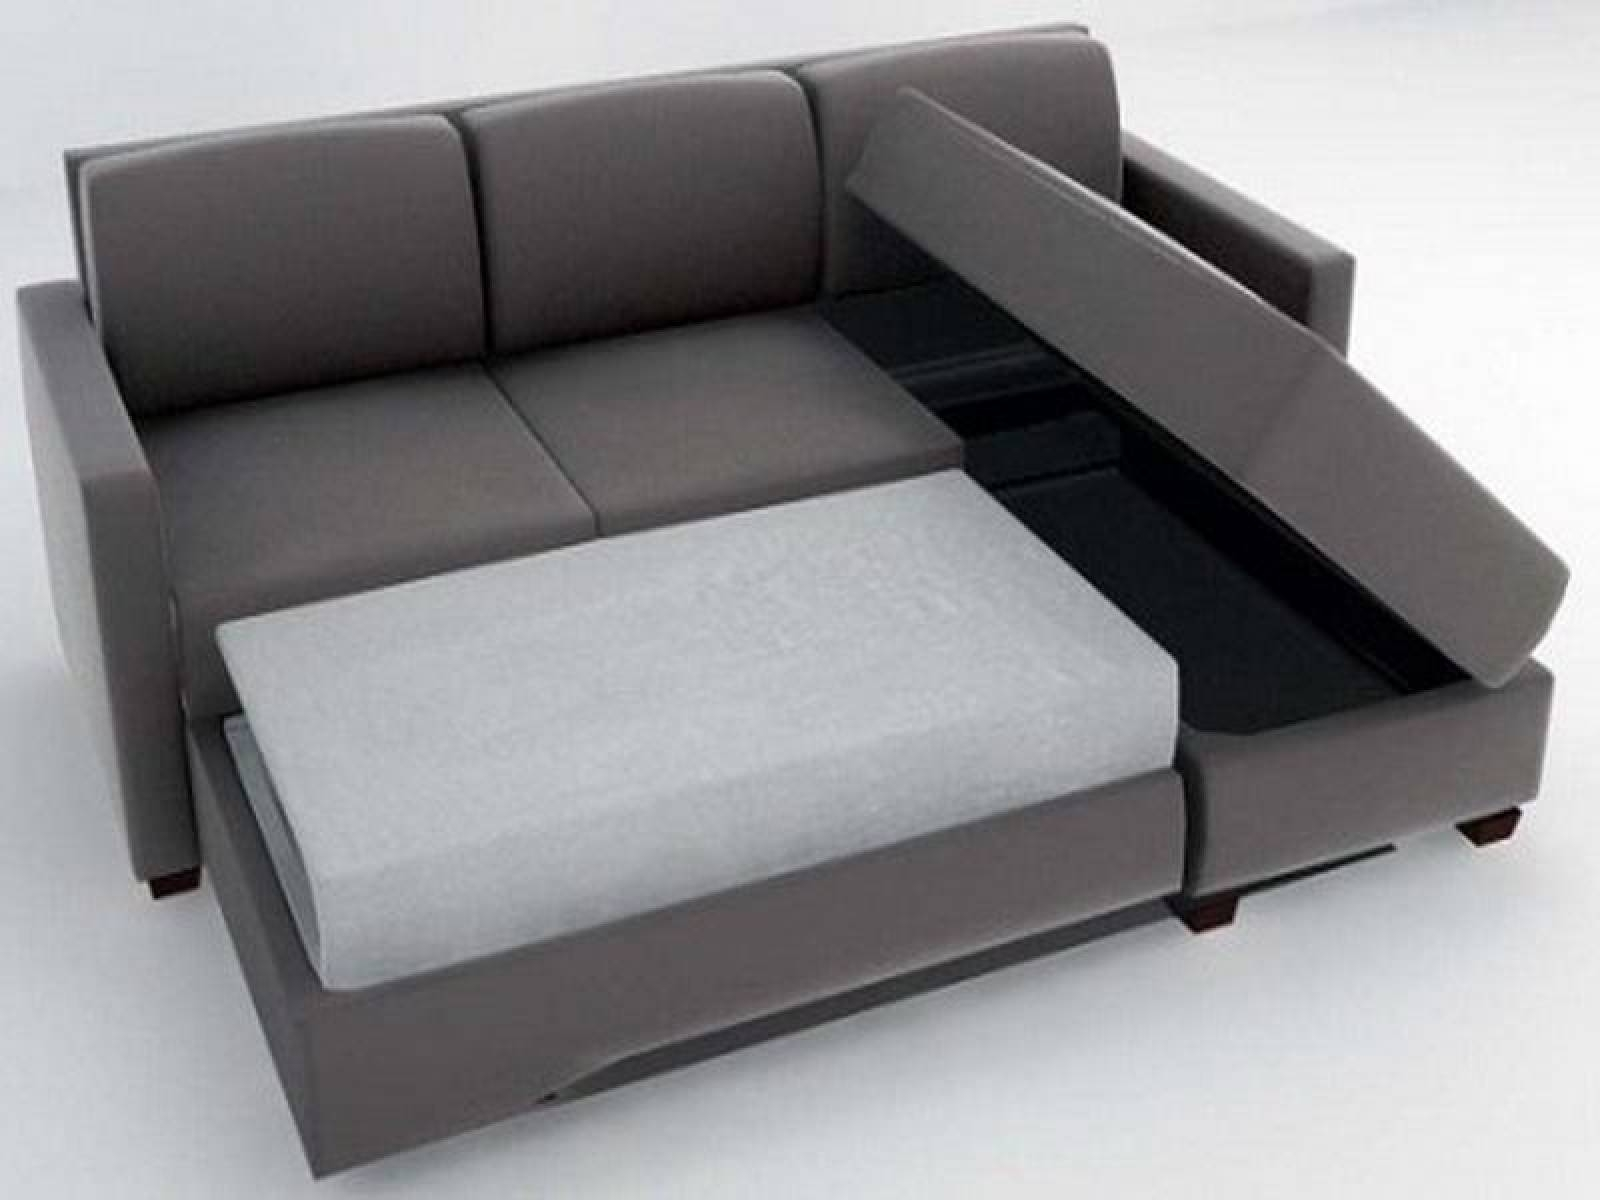 Sofa Bed For Small Spaces Philippines | Tehranmix Decoration pertaining to Mini Sofa Beds (Image 22 of 30)